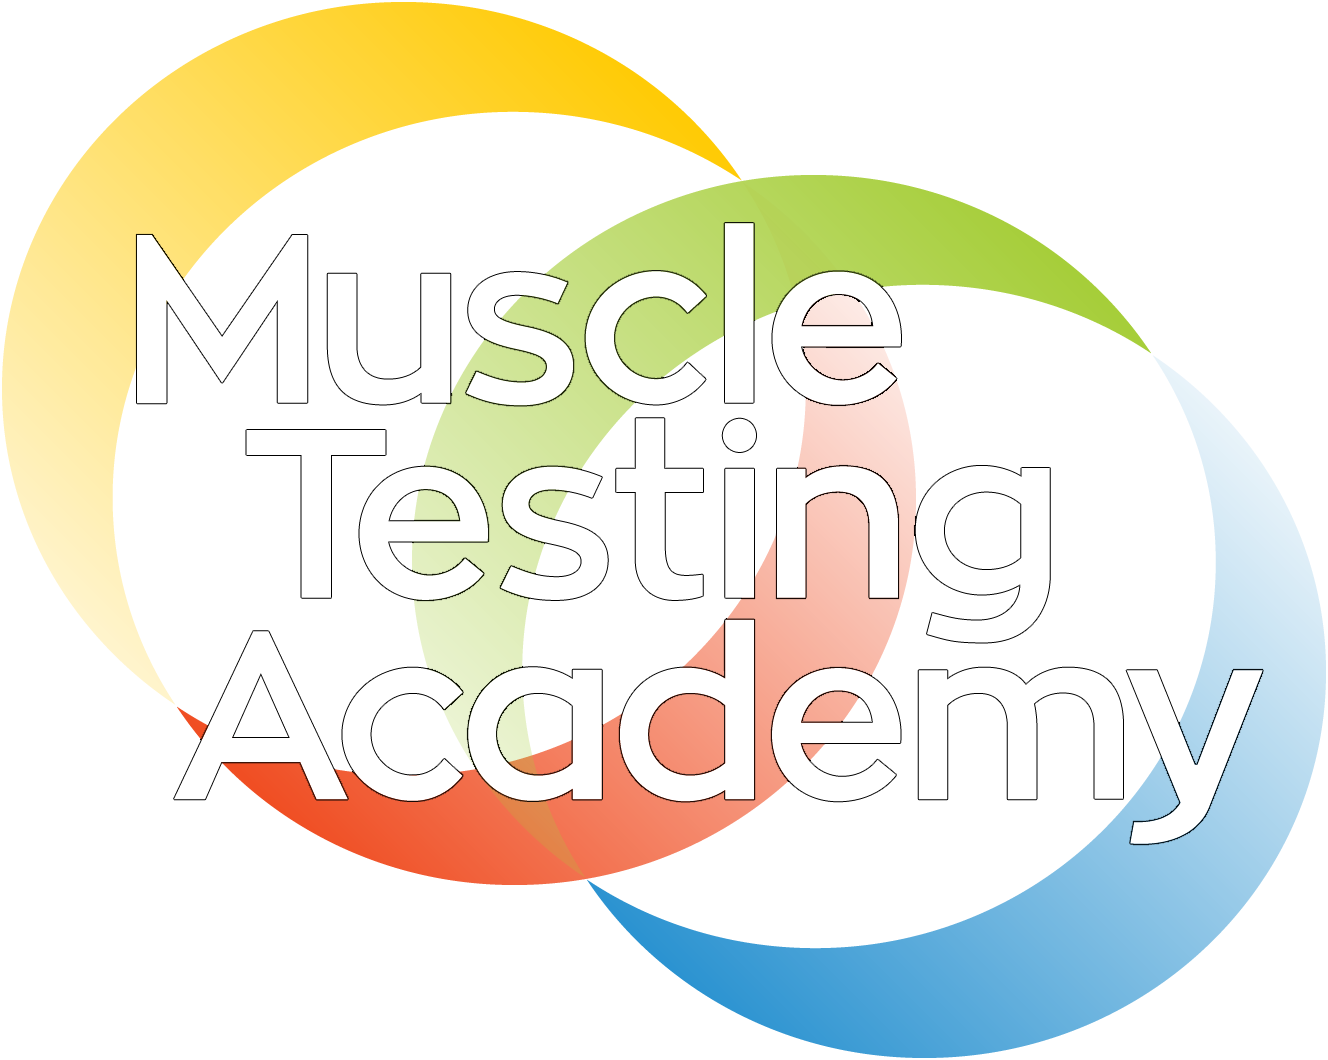 Muscle Testing Academy